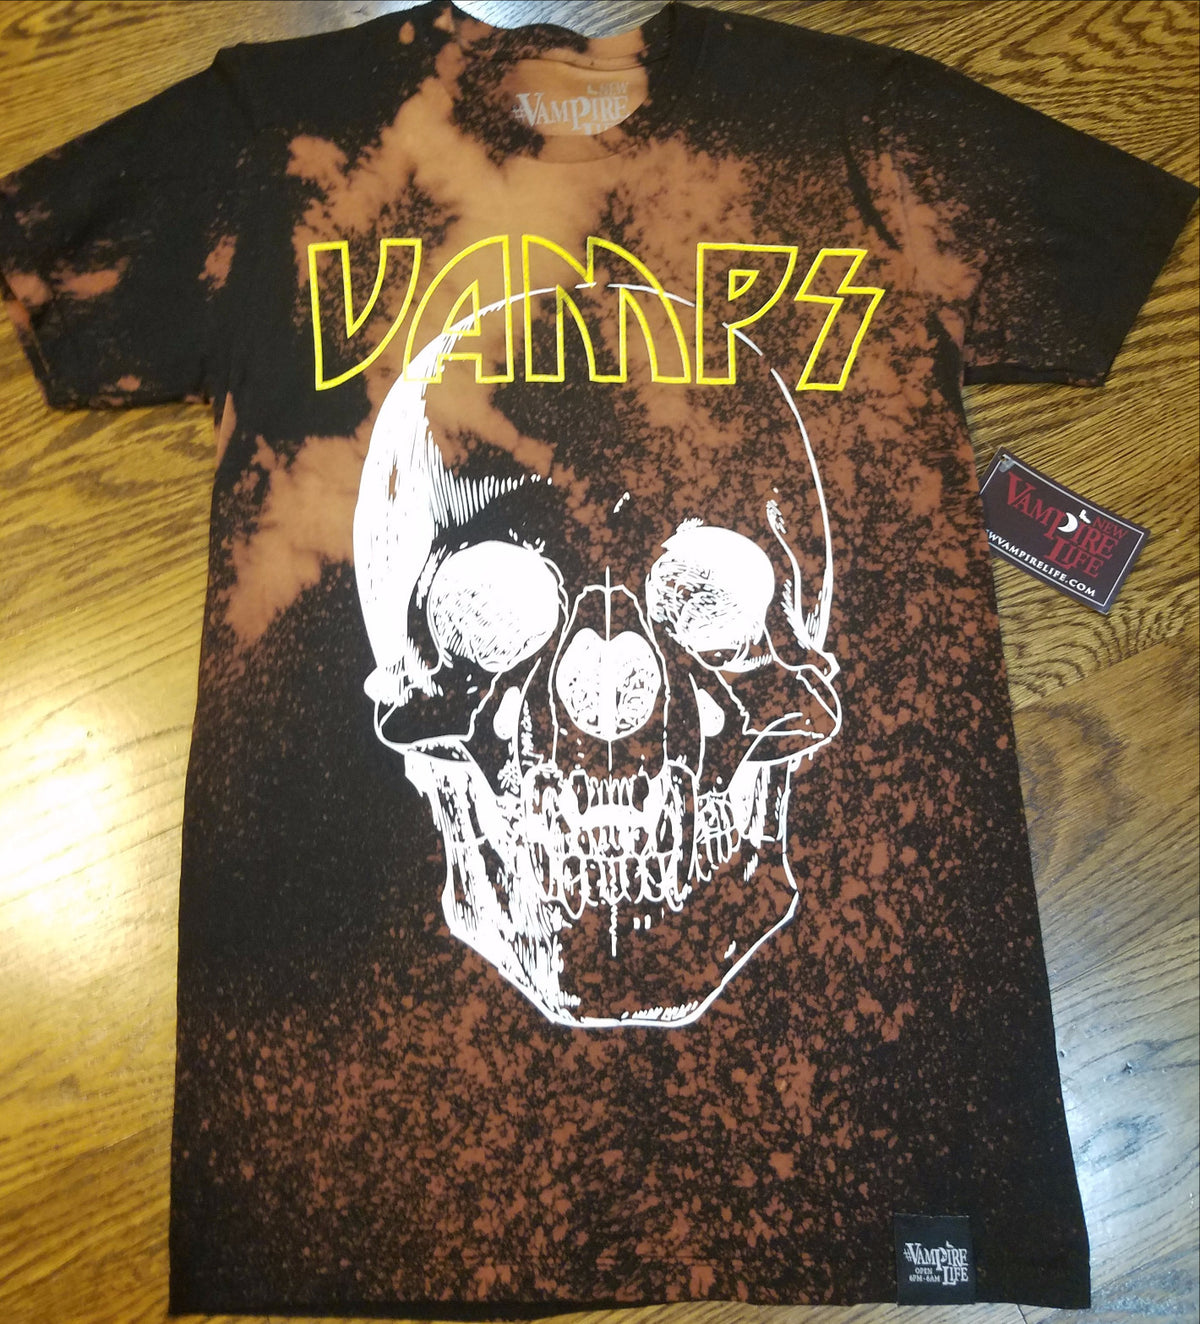 VAMPACDC VAMPDC1 - cosign1975